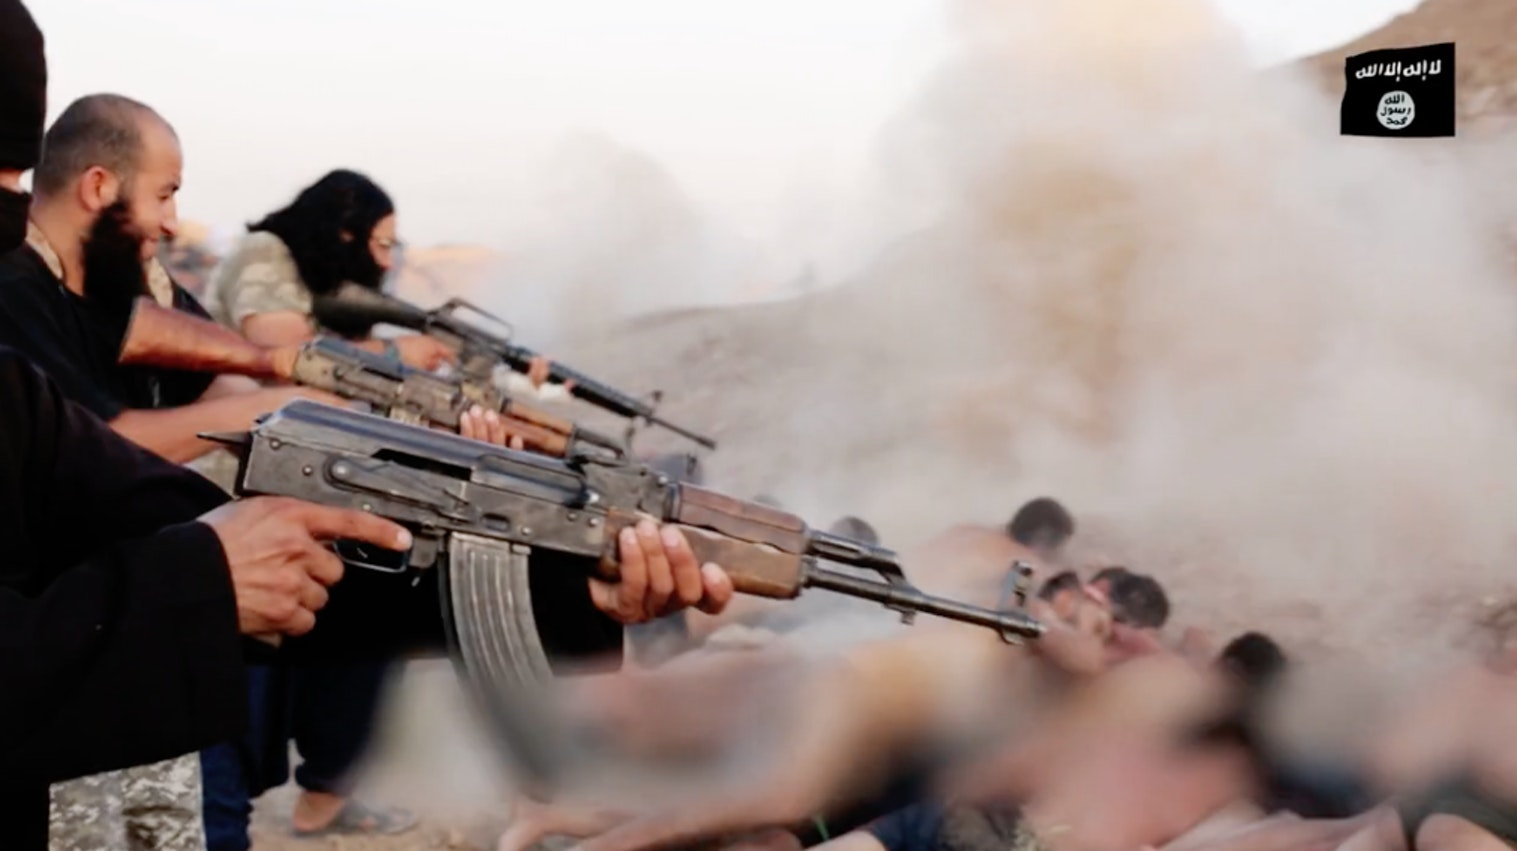 An image from an ISIS video showing the execution at Tabqa. Adams would analyze the meta data and the visuals of these videos to learn more about about the facts of the massacre.